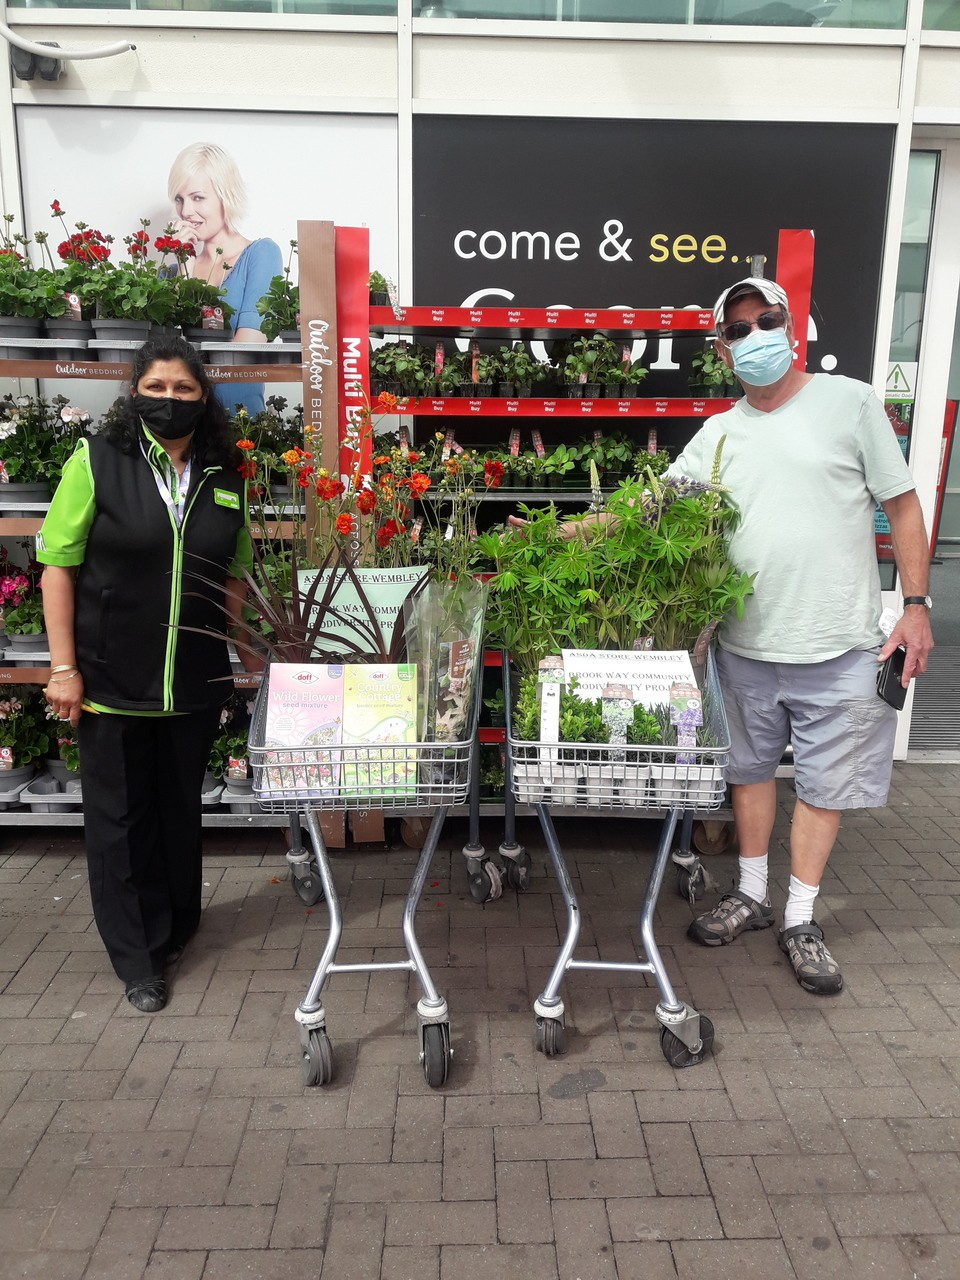 Donation for green project | Asda Wembley